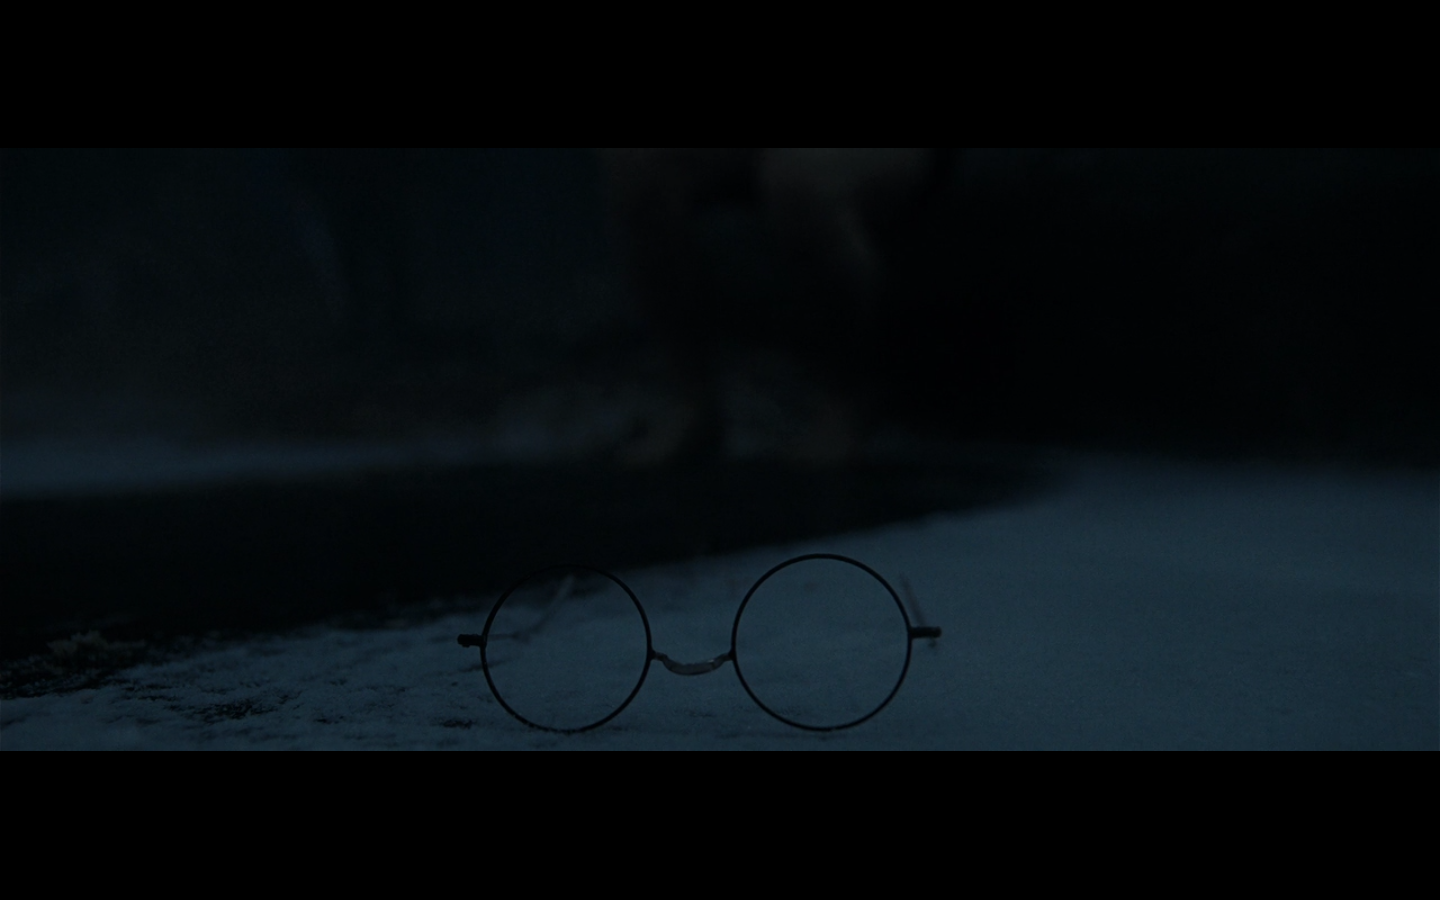 Good Wallpaper Harry Potter Simple - harry-potter-and-the-deathly-hallows-part-1-908  Collection_874100.png